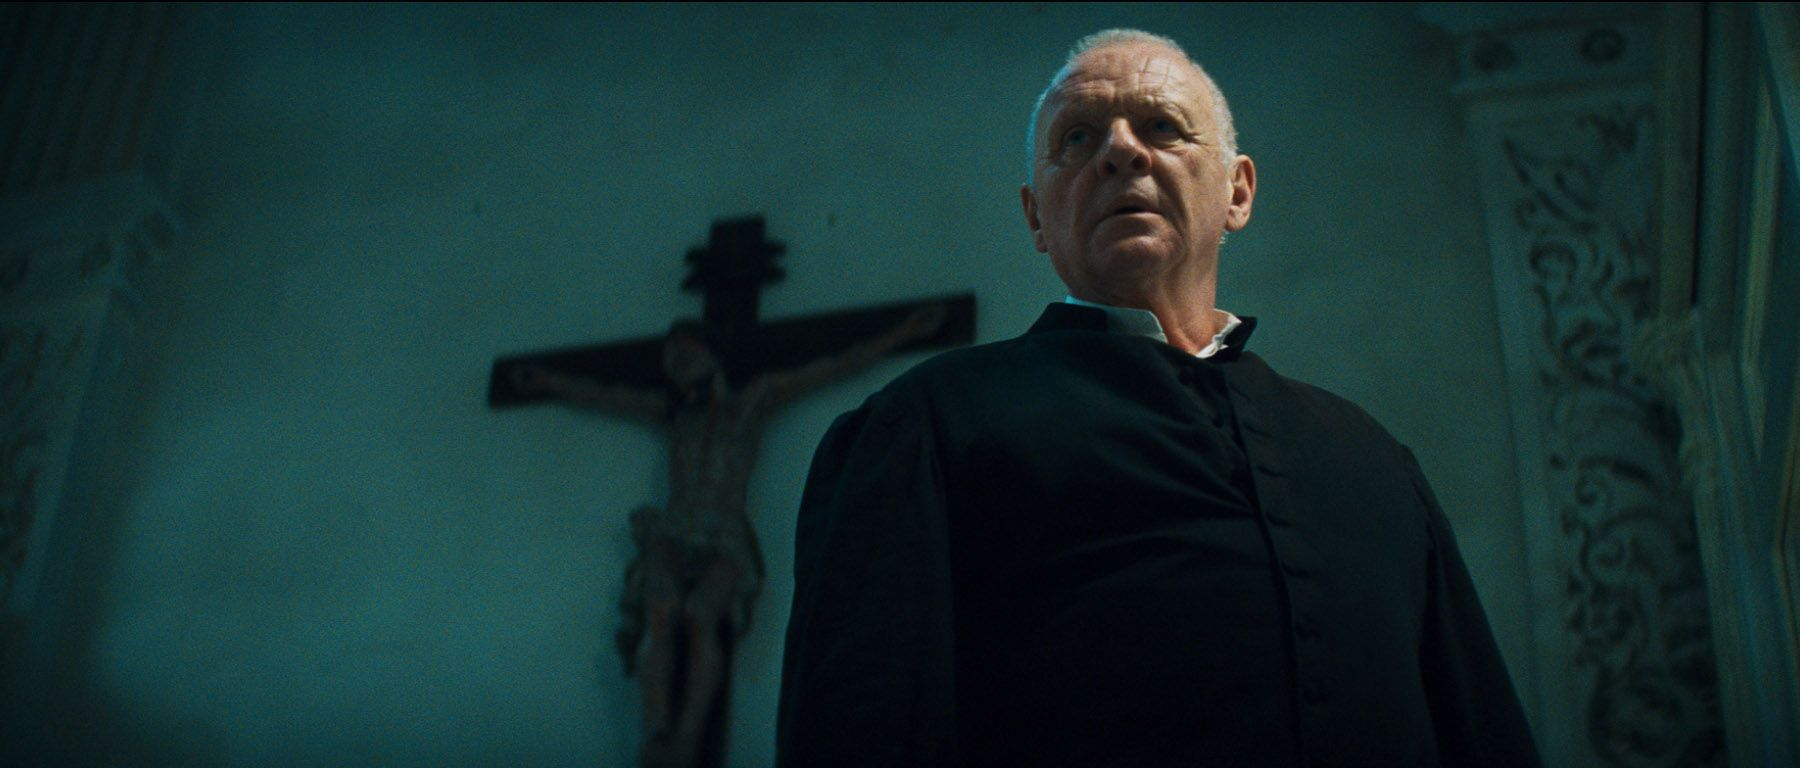 The Rite (2011) Anthony Hopkins as Father Lucas